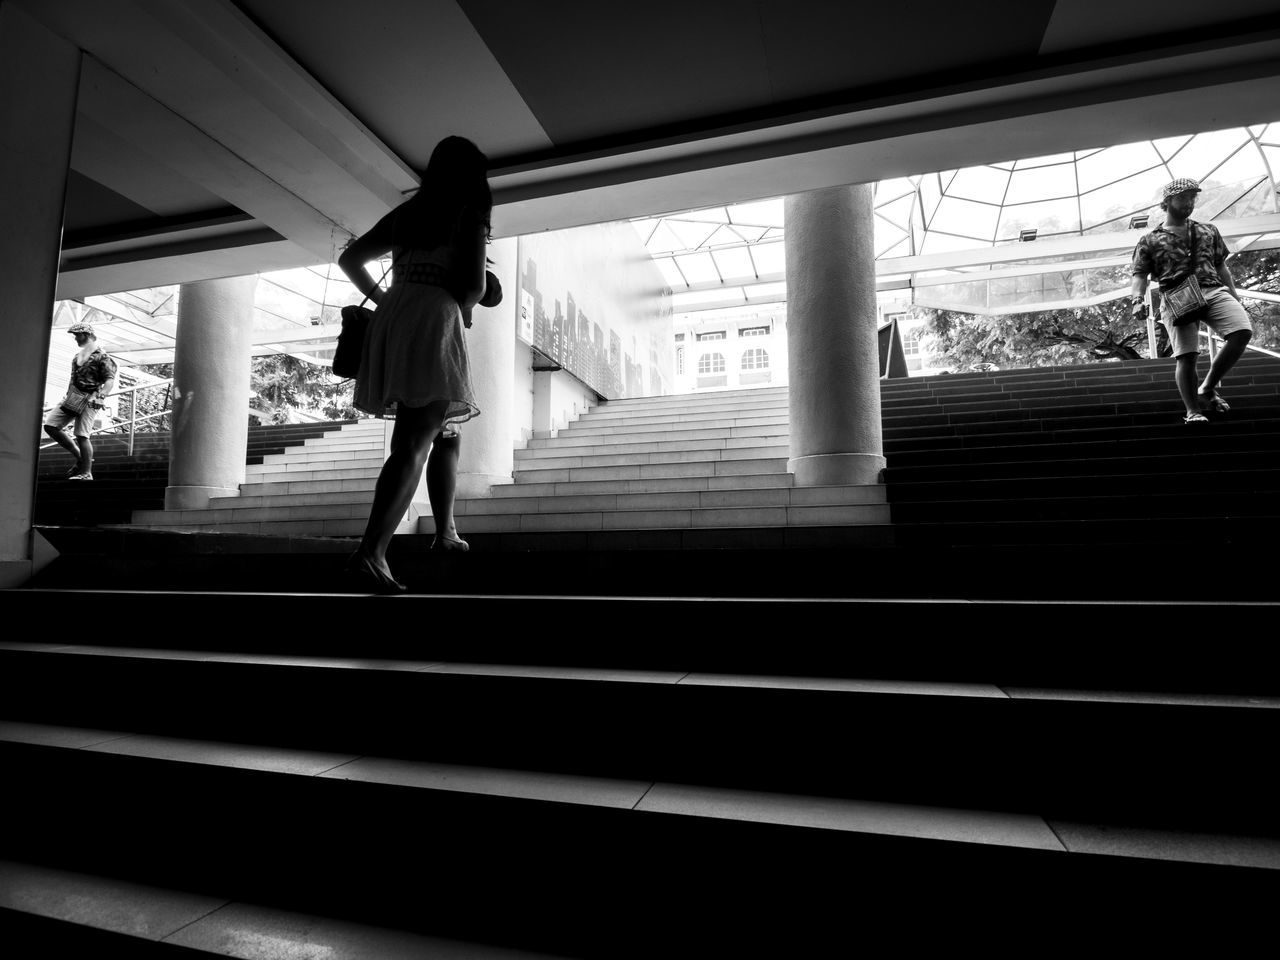 Woman walking up the steps from underground as a man walks down B&w B&w Street Photography Black And White Blackandwhite City City Life Going Up Low Angle View Railing Rear View Silhouette Stairs Steps Street Streetphotography Urban Urbanphotography Walking Woman